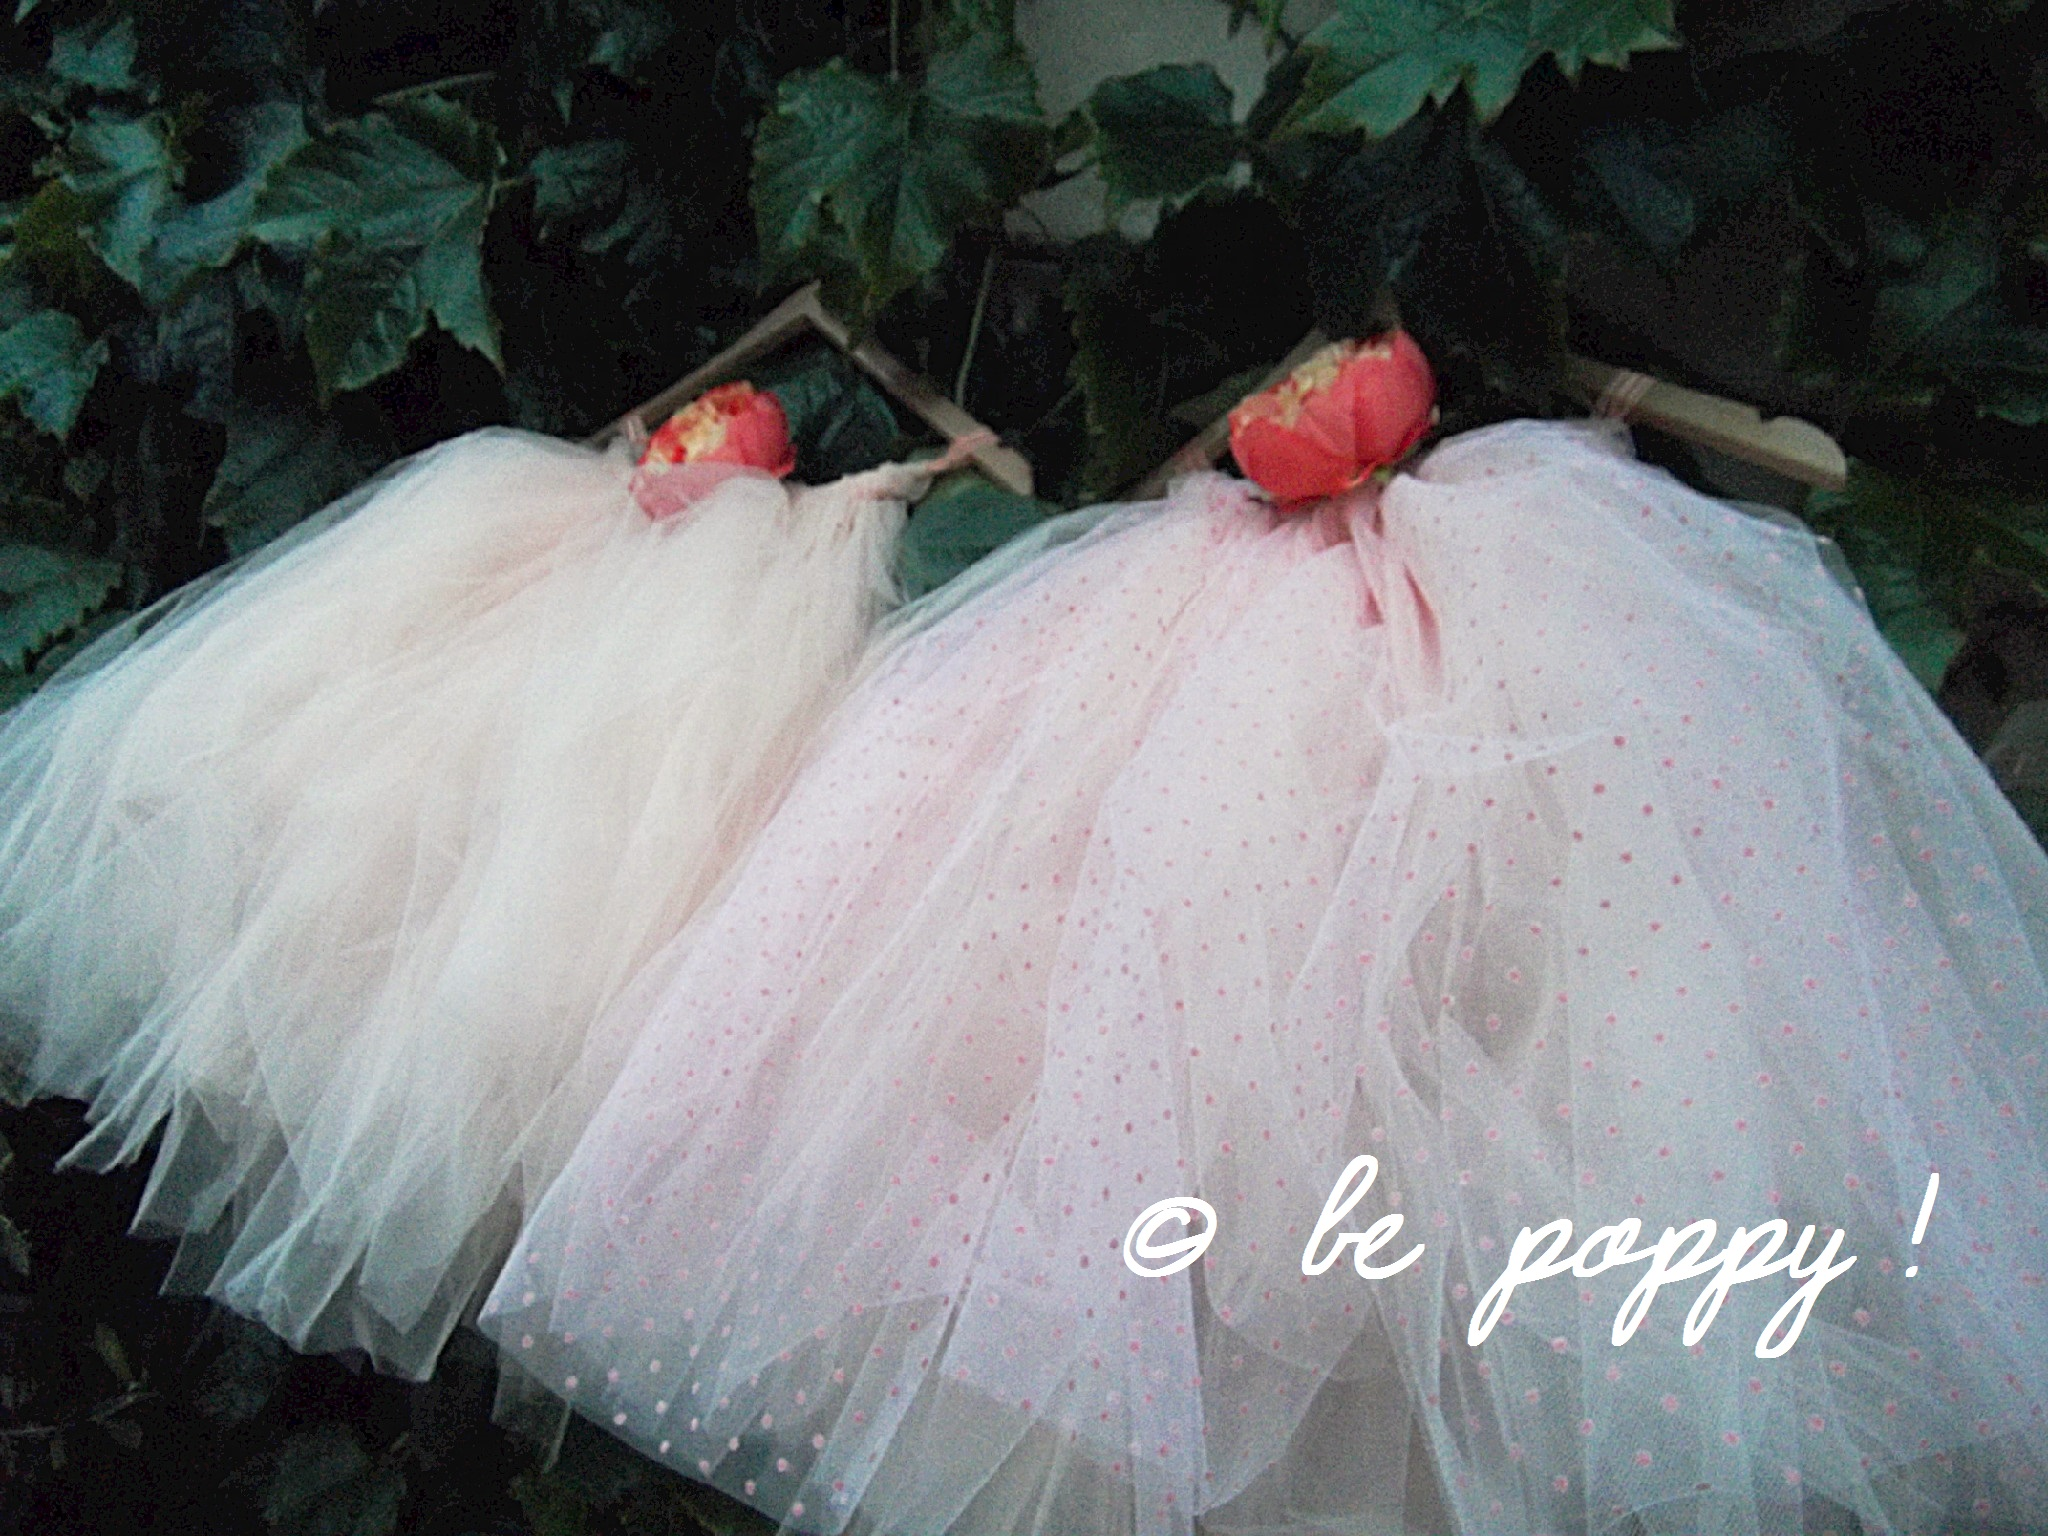 Two of 'be poppy !'s short style tutus in Apricot colour